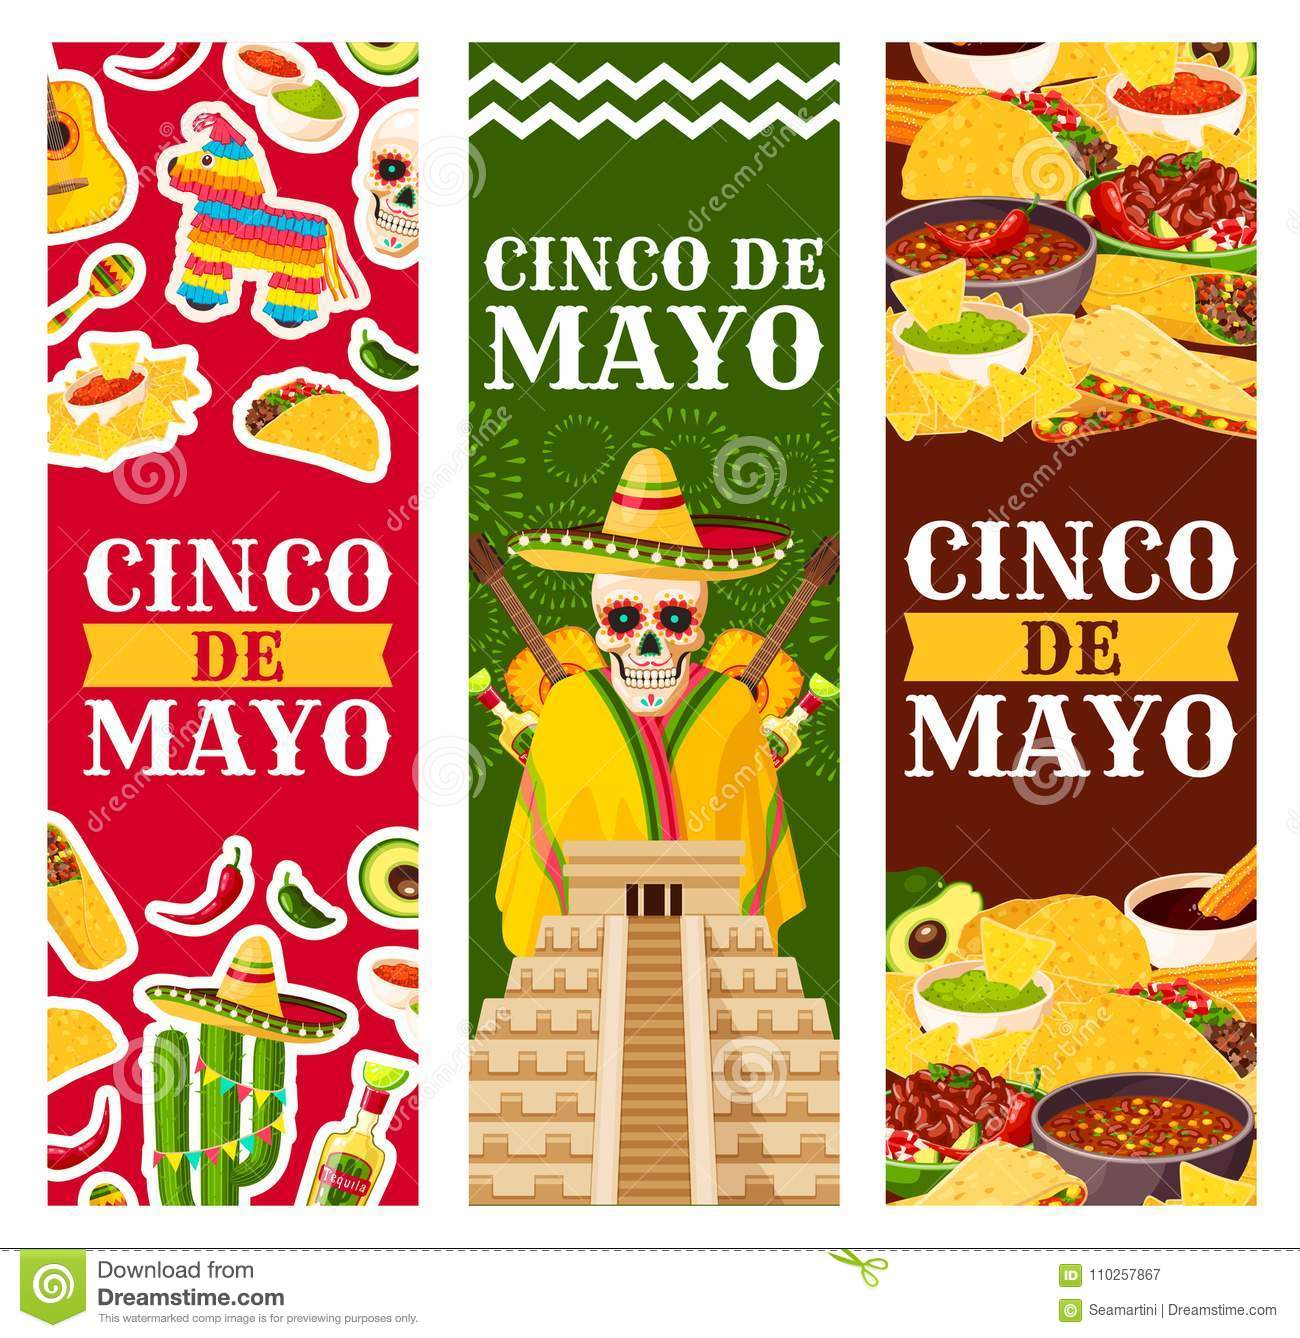 Cinco de mayo mexican vector greeting banners stock vector cinco de mayo mexican vector greeting banners m4hsunfo